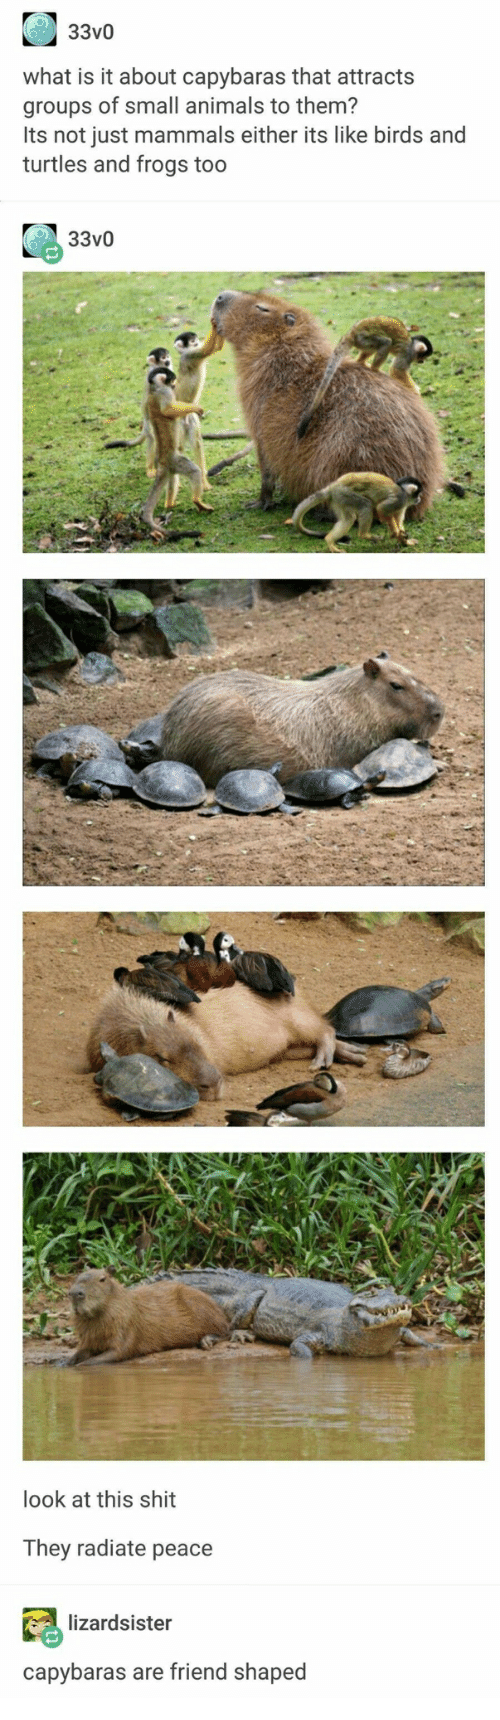 Animals, Shit, and Birds: 33v0  what is it about capybaras that attracts  groups of small animals to them?  Its not just mammals either its like birds and  turtles and frogs too  33v0  look at this shit  They radiate peace  lizardsister  capybaras are friend shaped